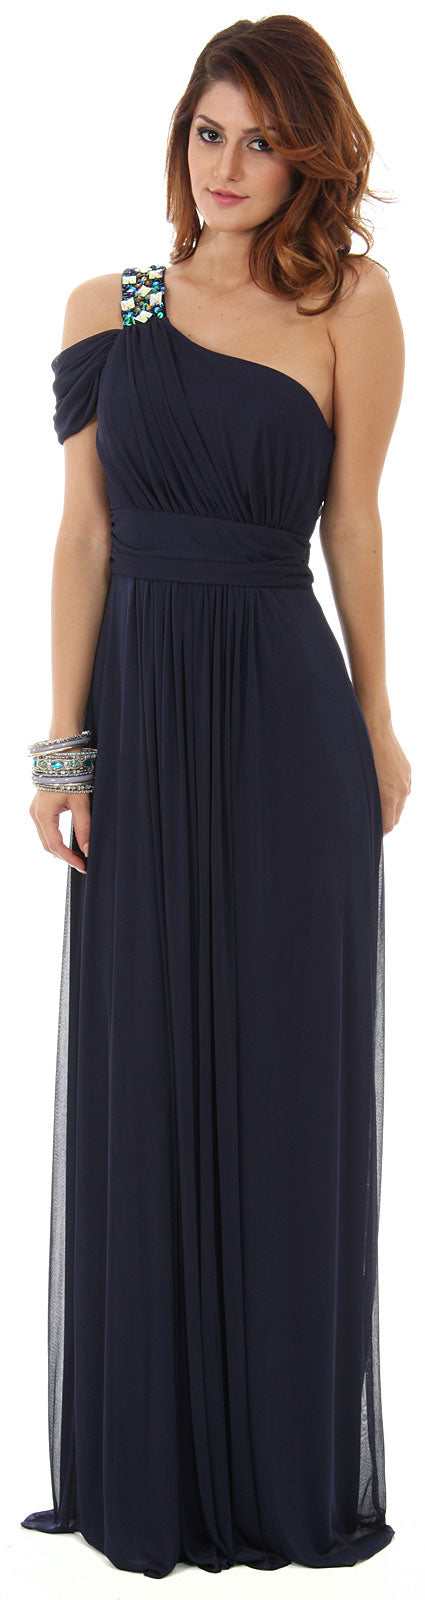 Main image of One Shoulder Long Formal Dress With Bejeweled Strap